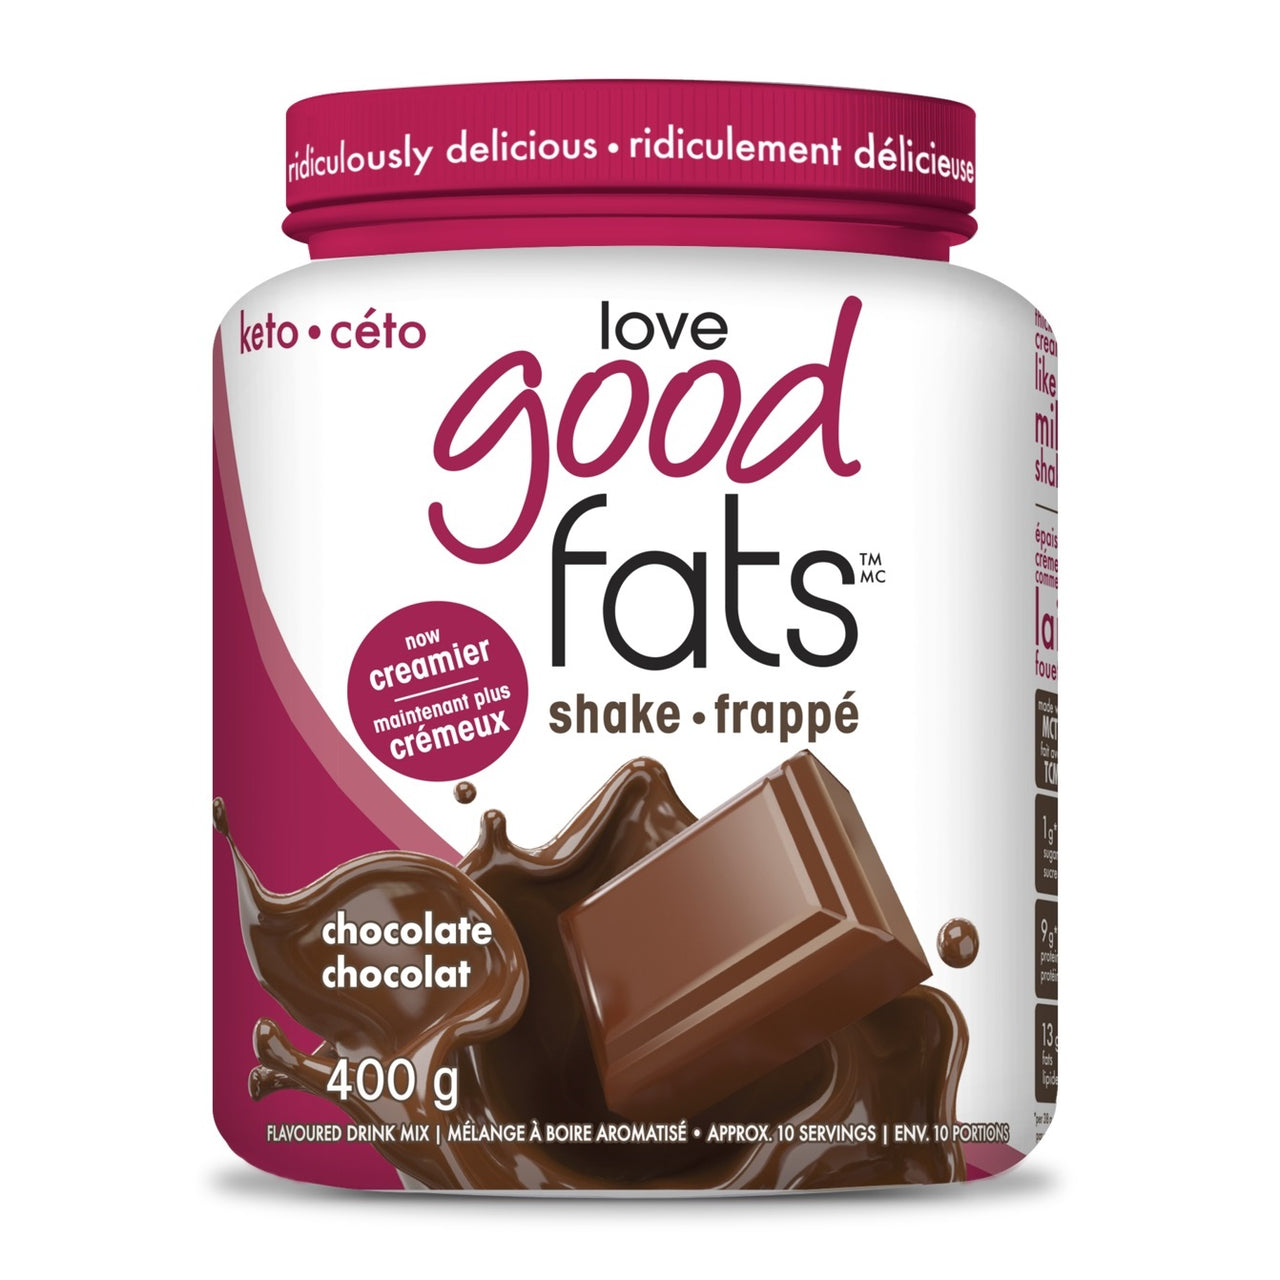 love good fats Keto Shakes *New